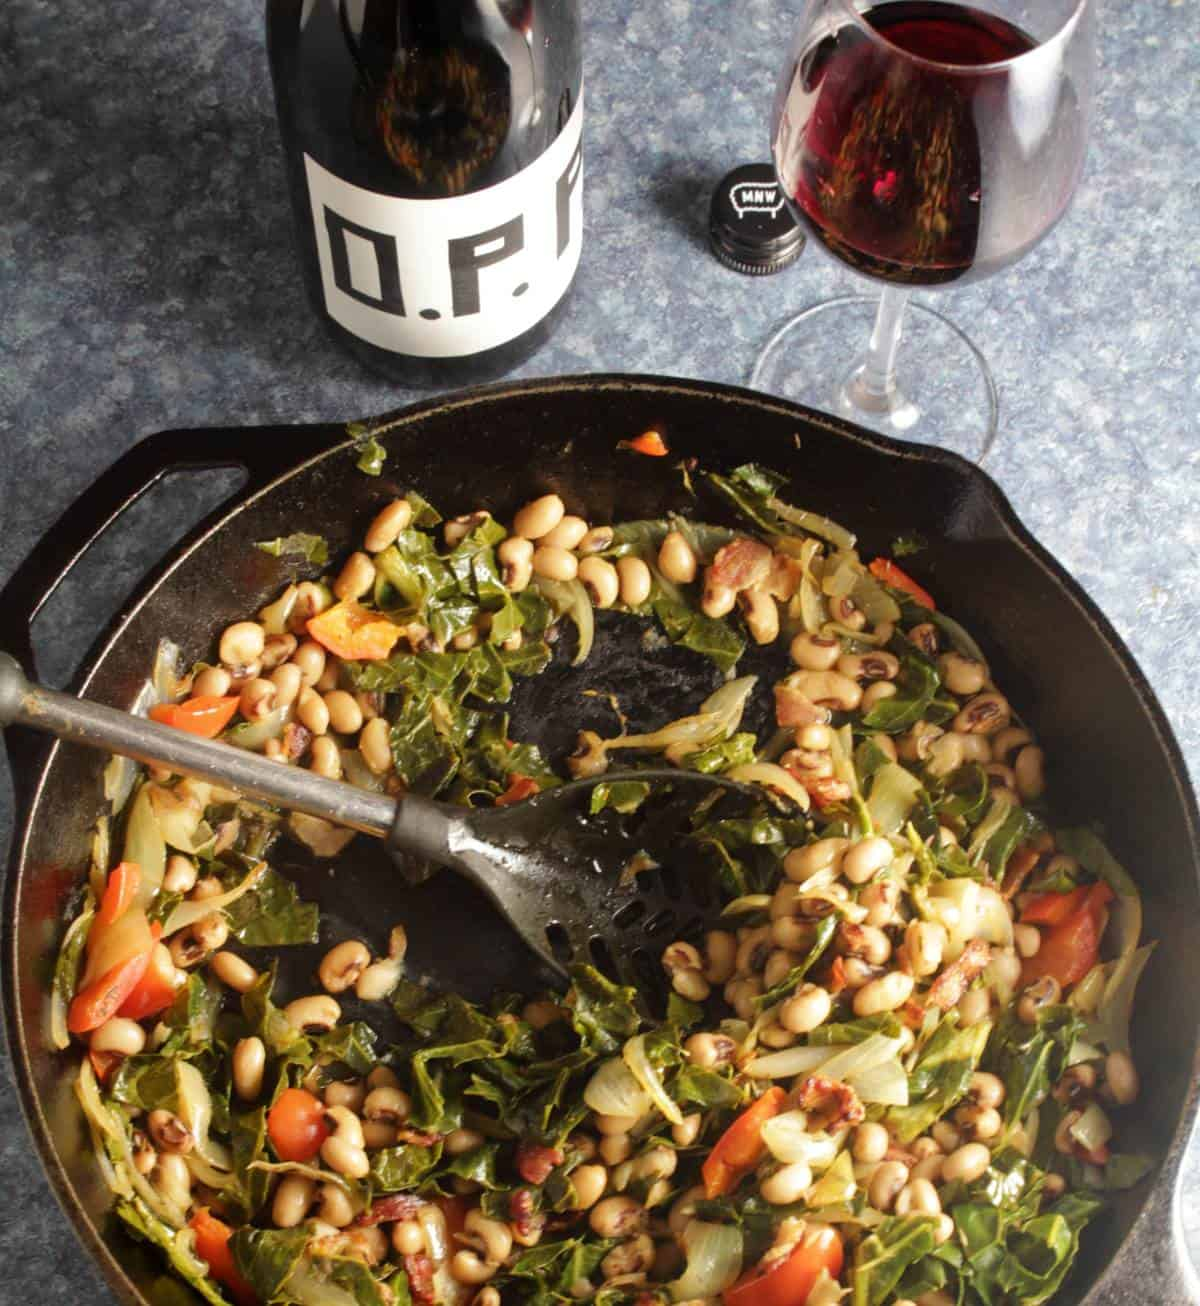 skillet with black-eyed peas and collard greens, served with a red wine.